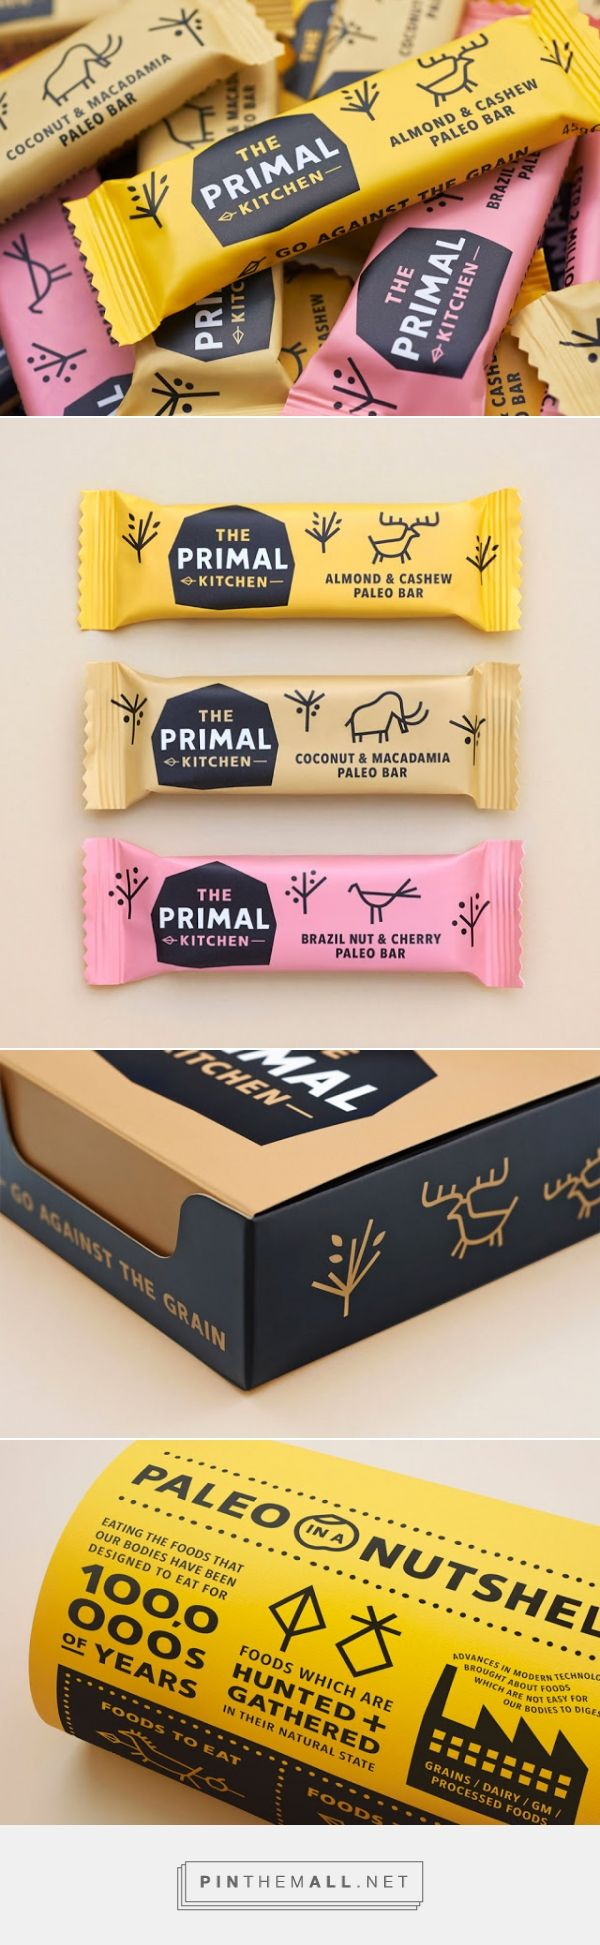 The Primal Kitchen Packaging of the World - Creative Package Design Gallery - http://www.packagingoftheworld.com/2015/09/the-primal-kitchen.html - created via http://pinthemall.net